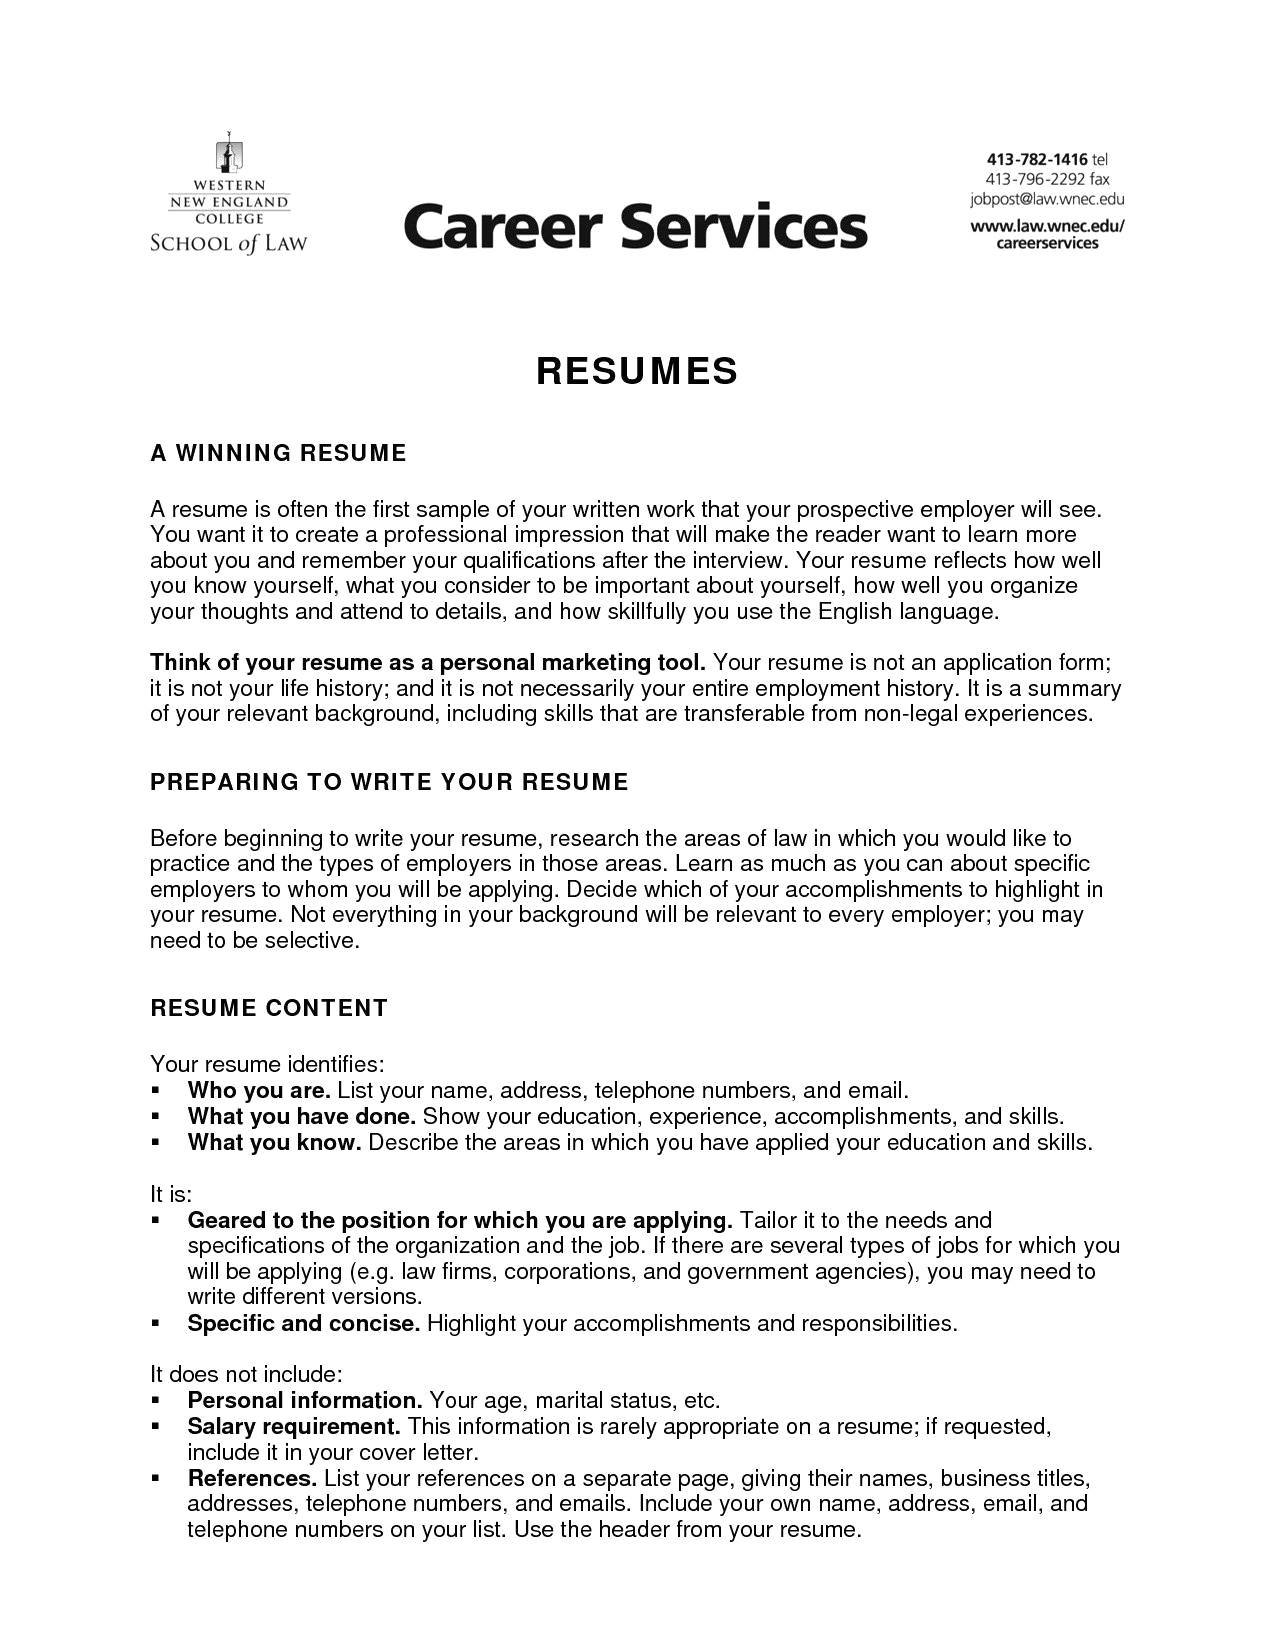 Resume Template For Cna Position